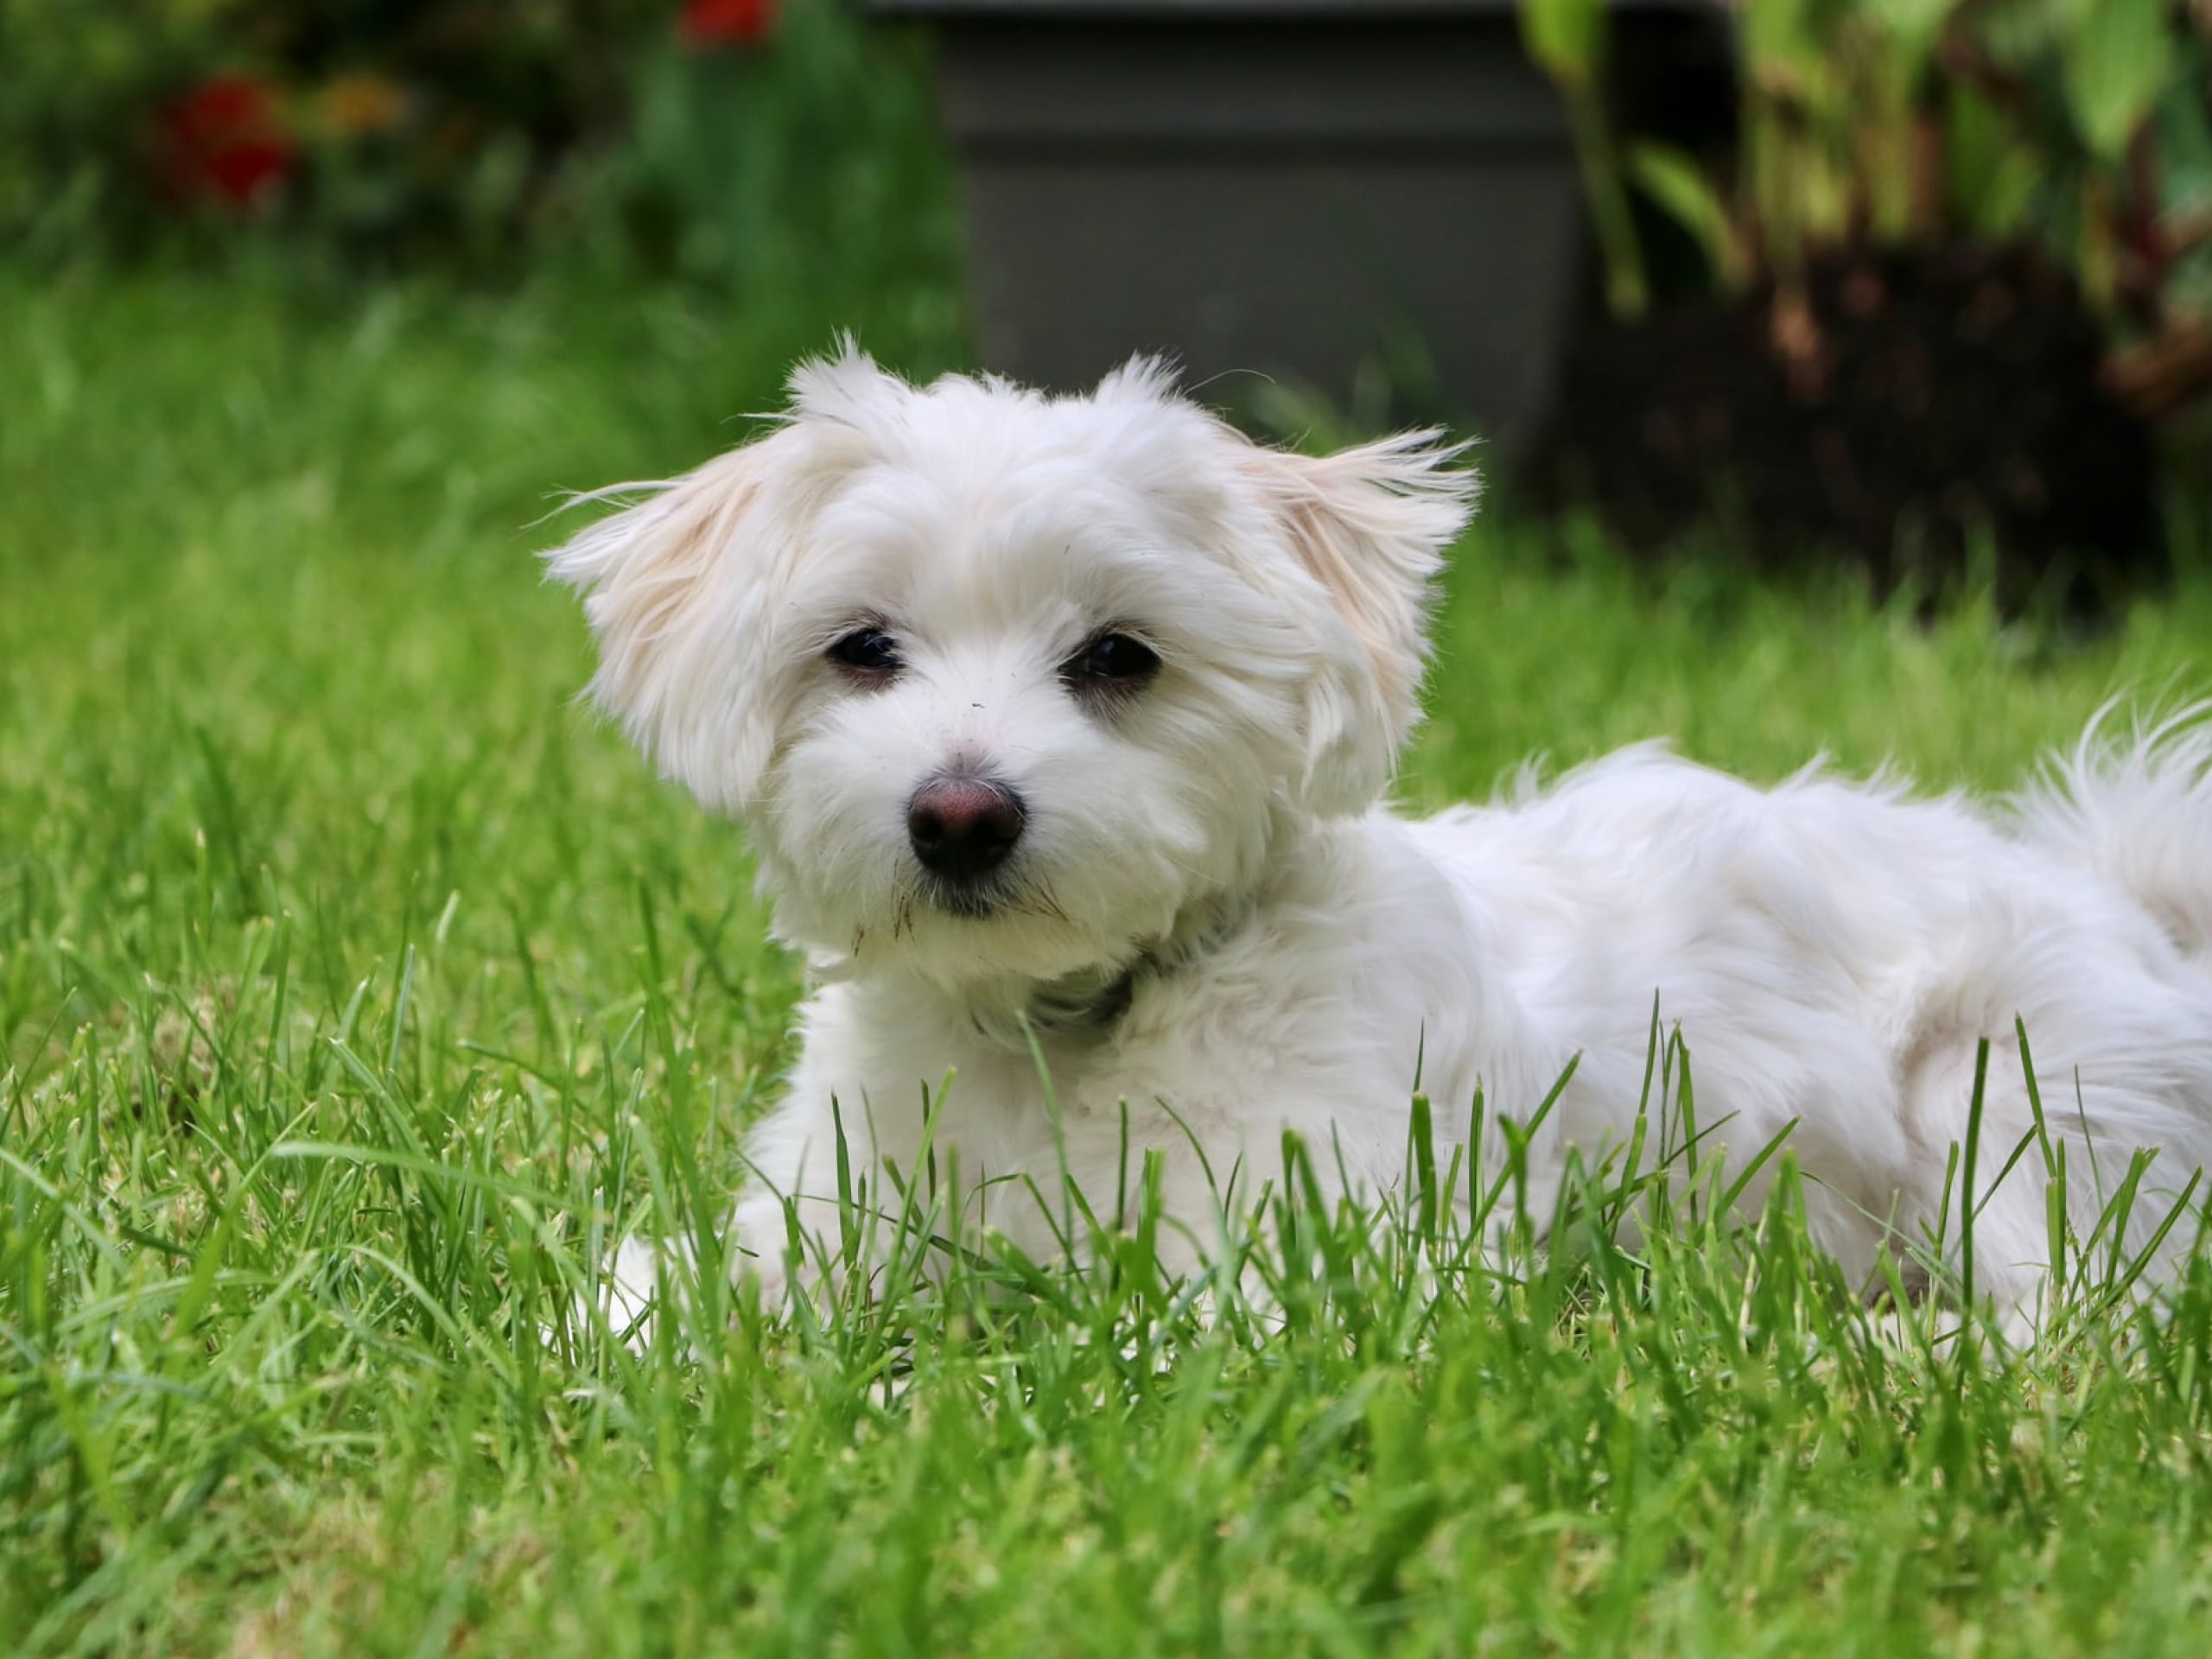 A white dog sitting in the grass.